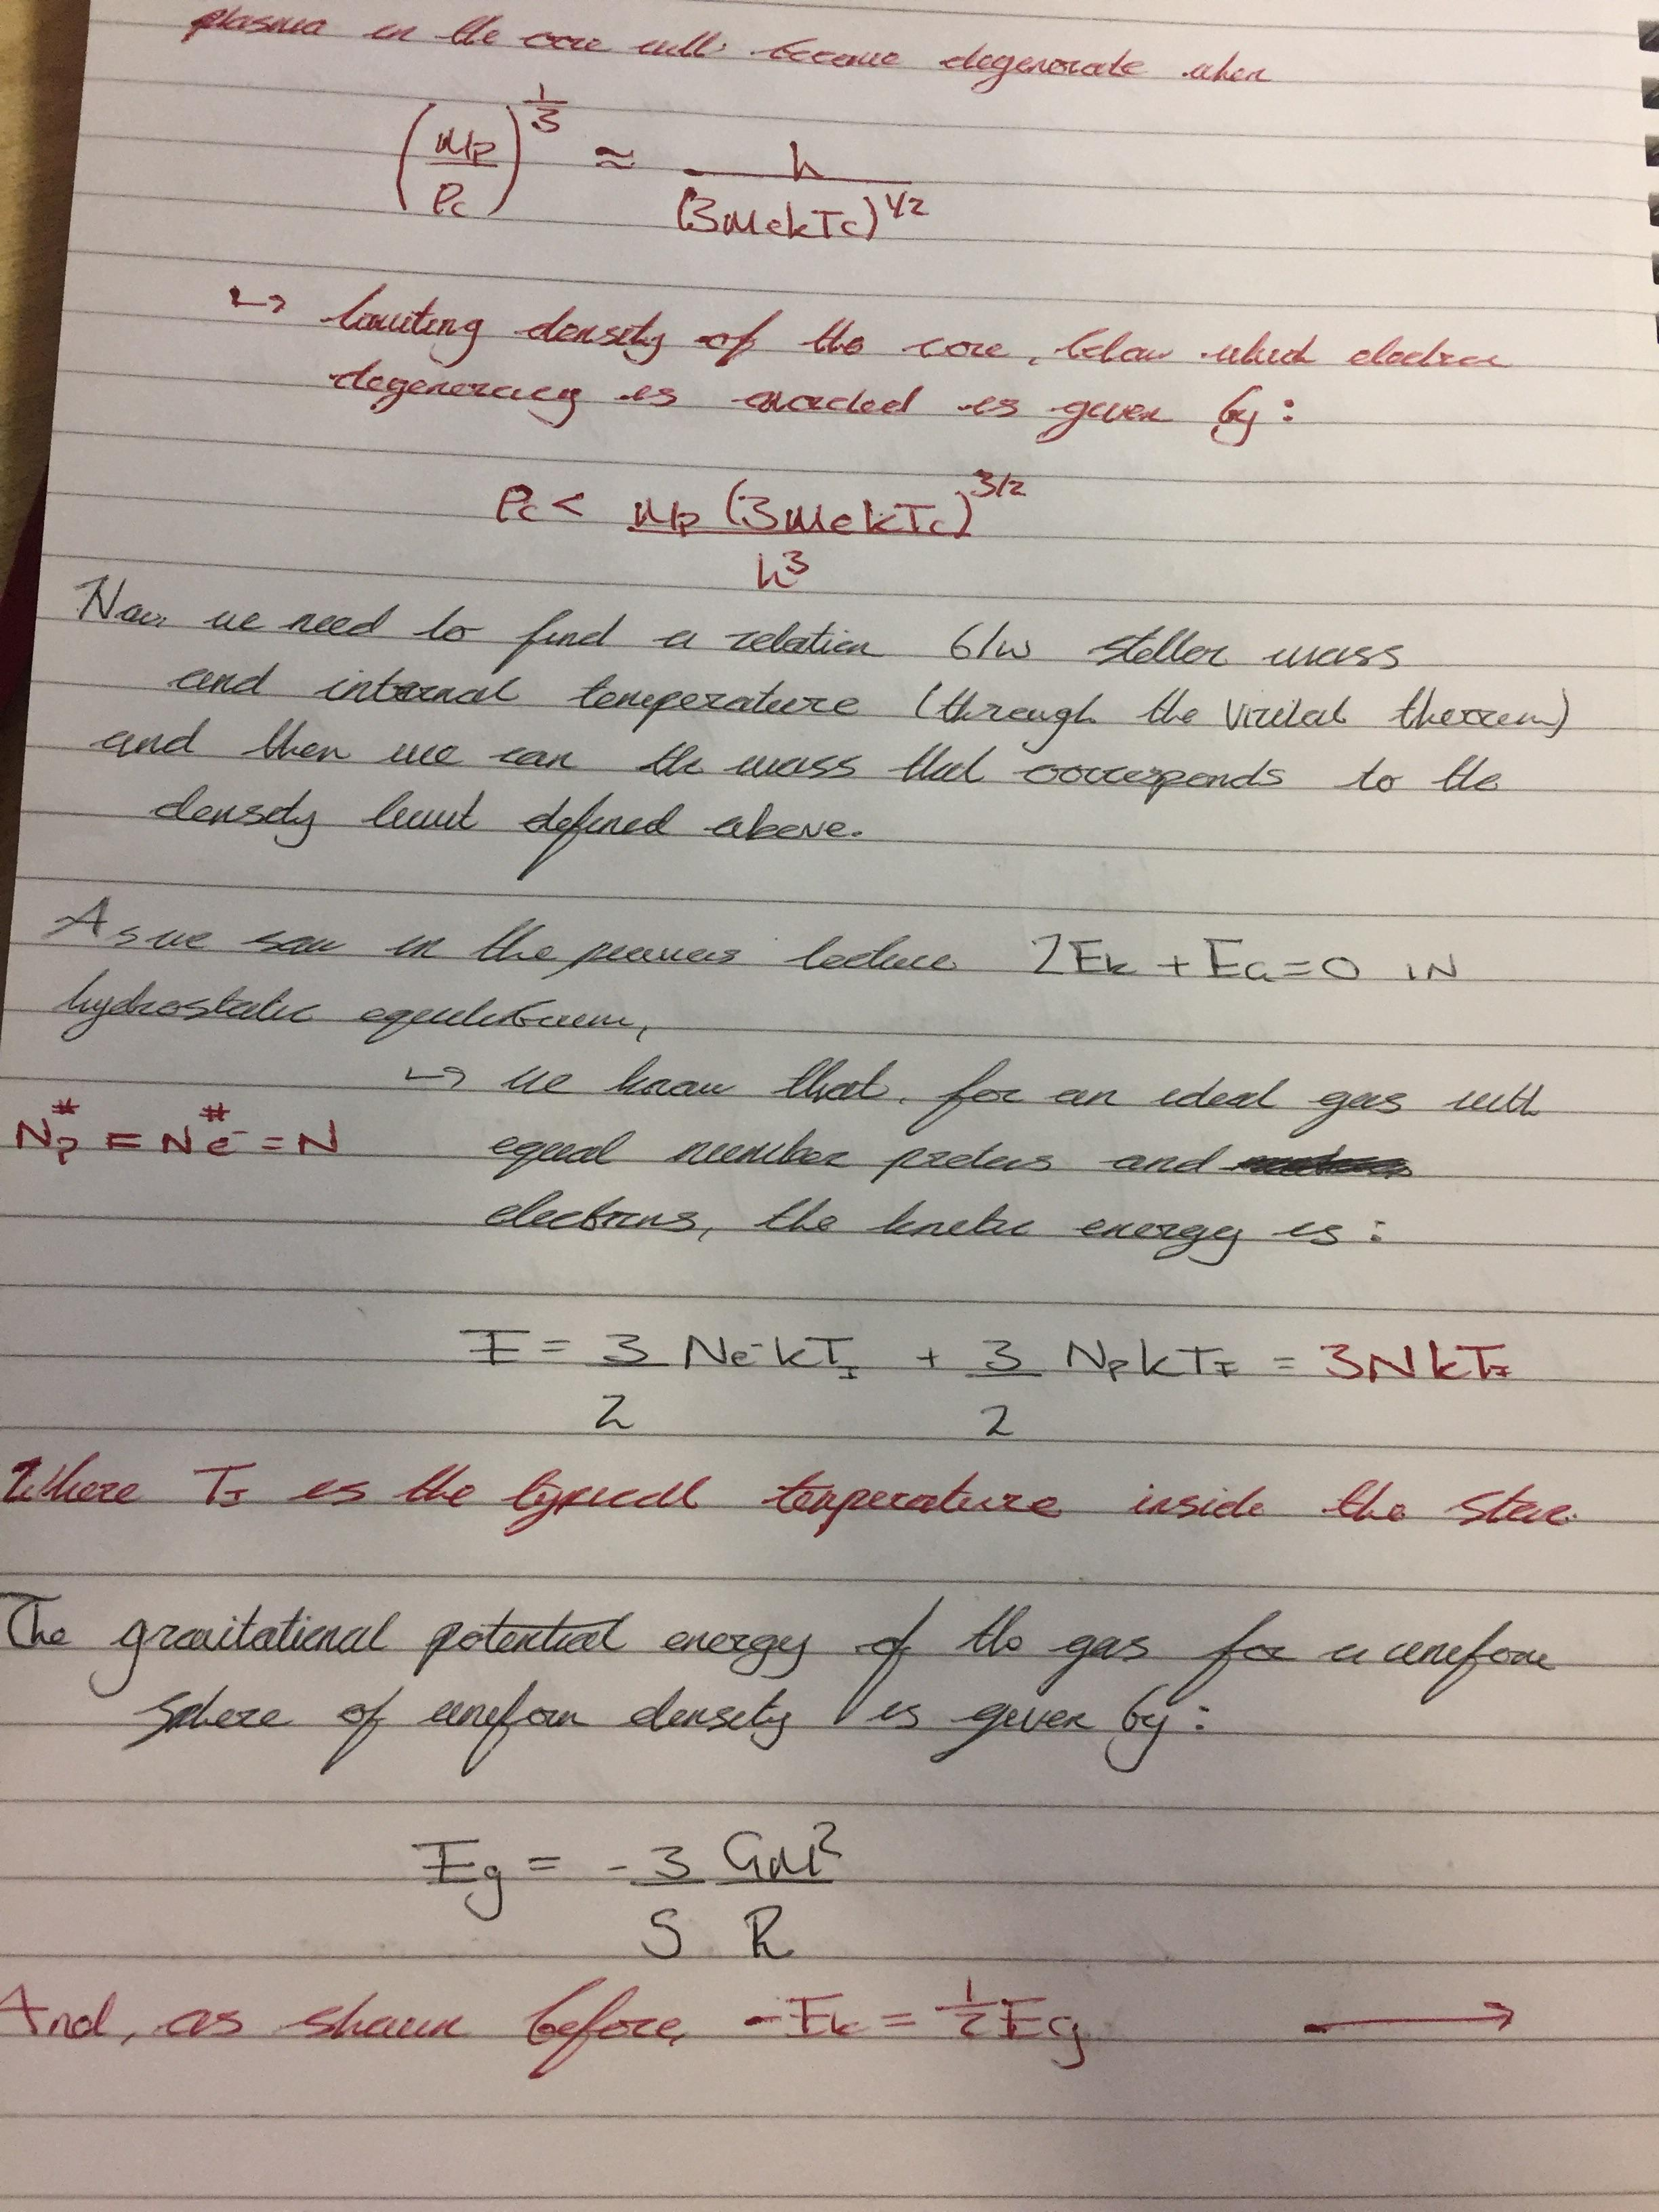 Switching To Cursive From Printing To Speed Up My Note Taking In Lectures Tips And Improvements